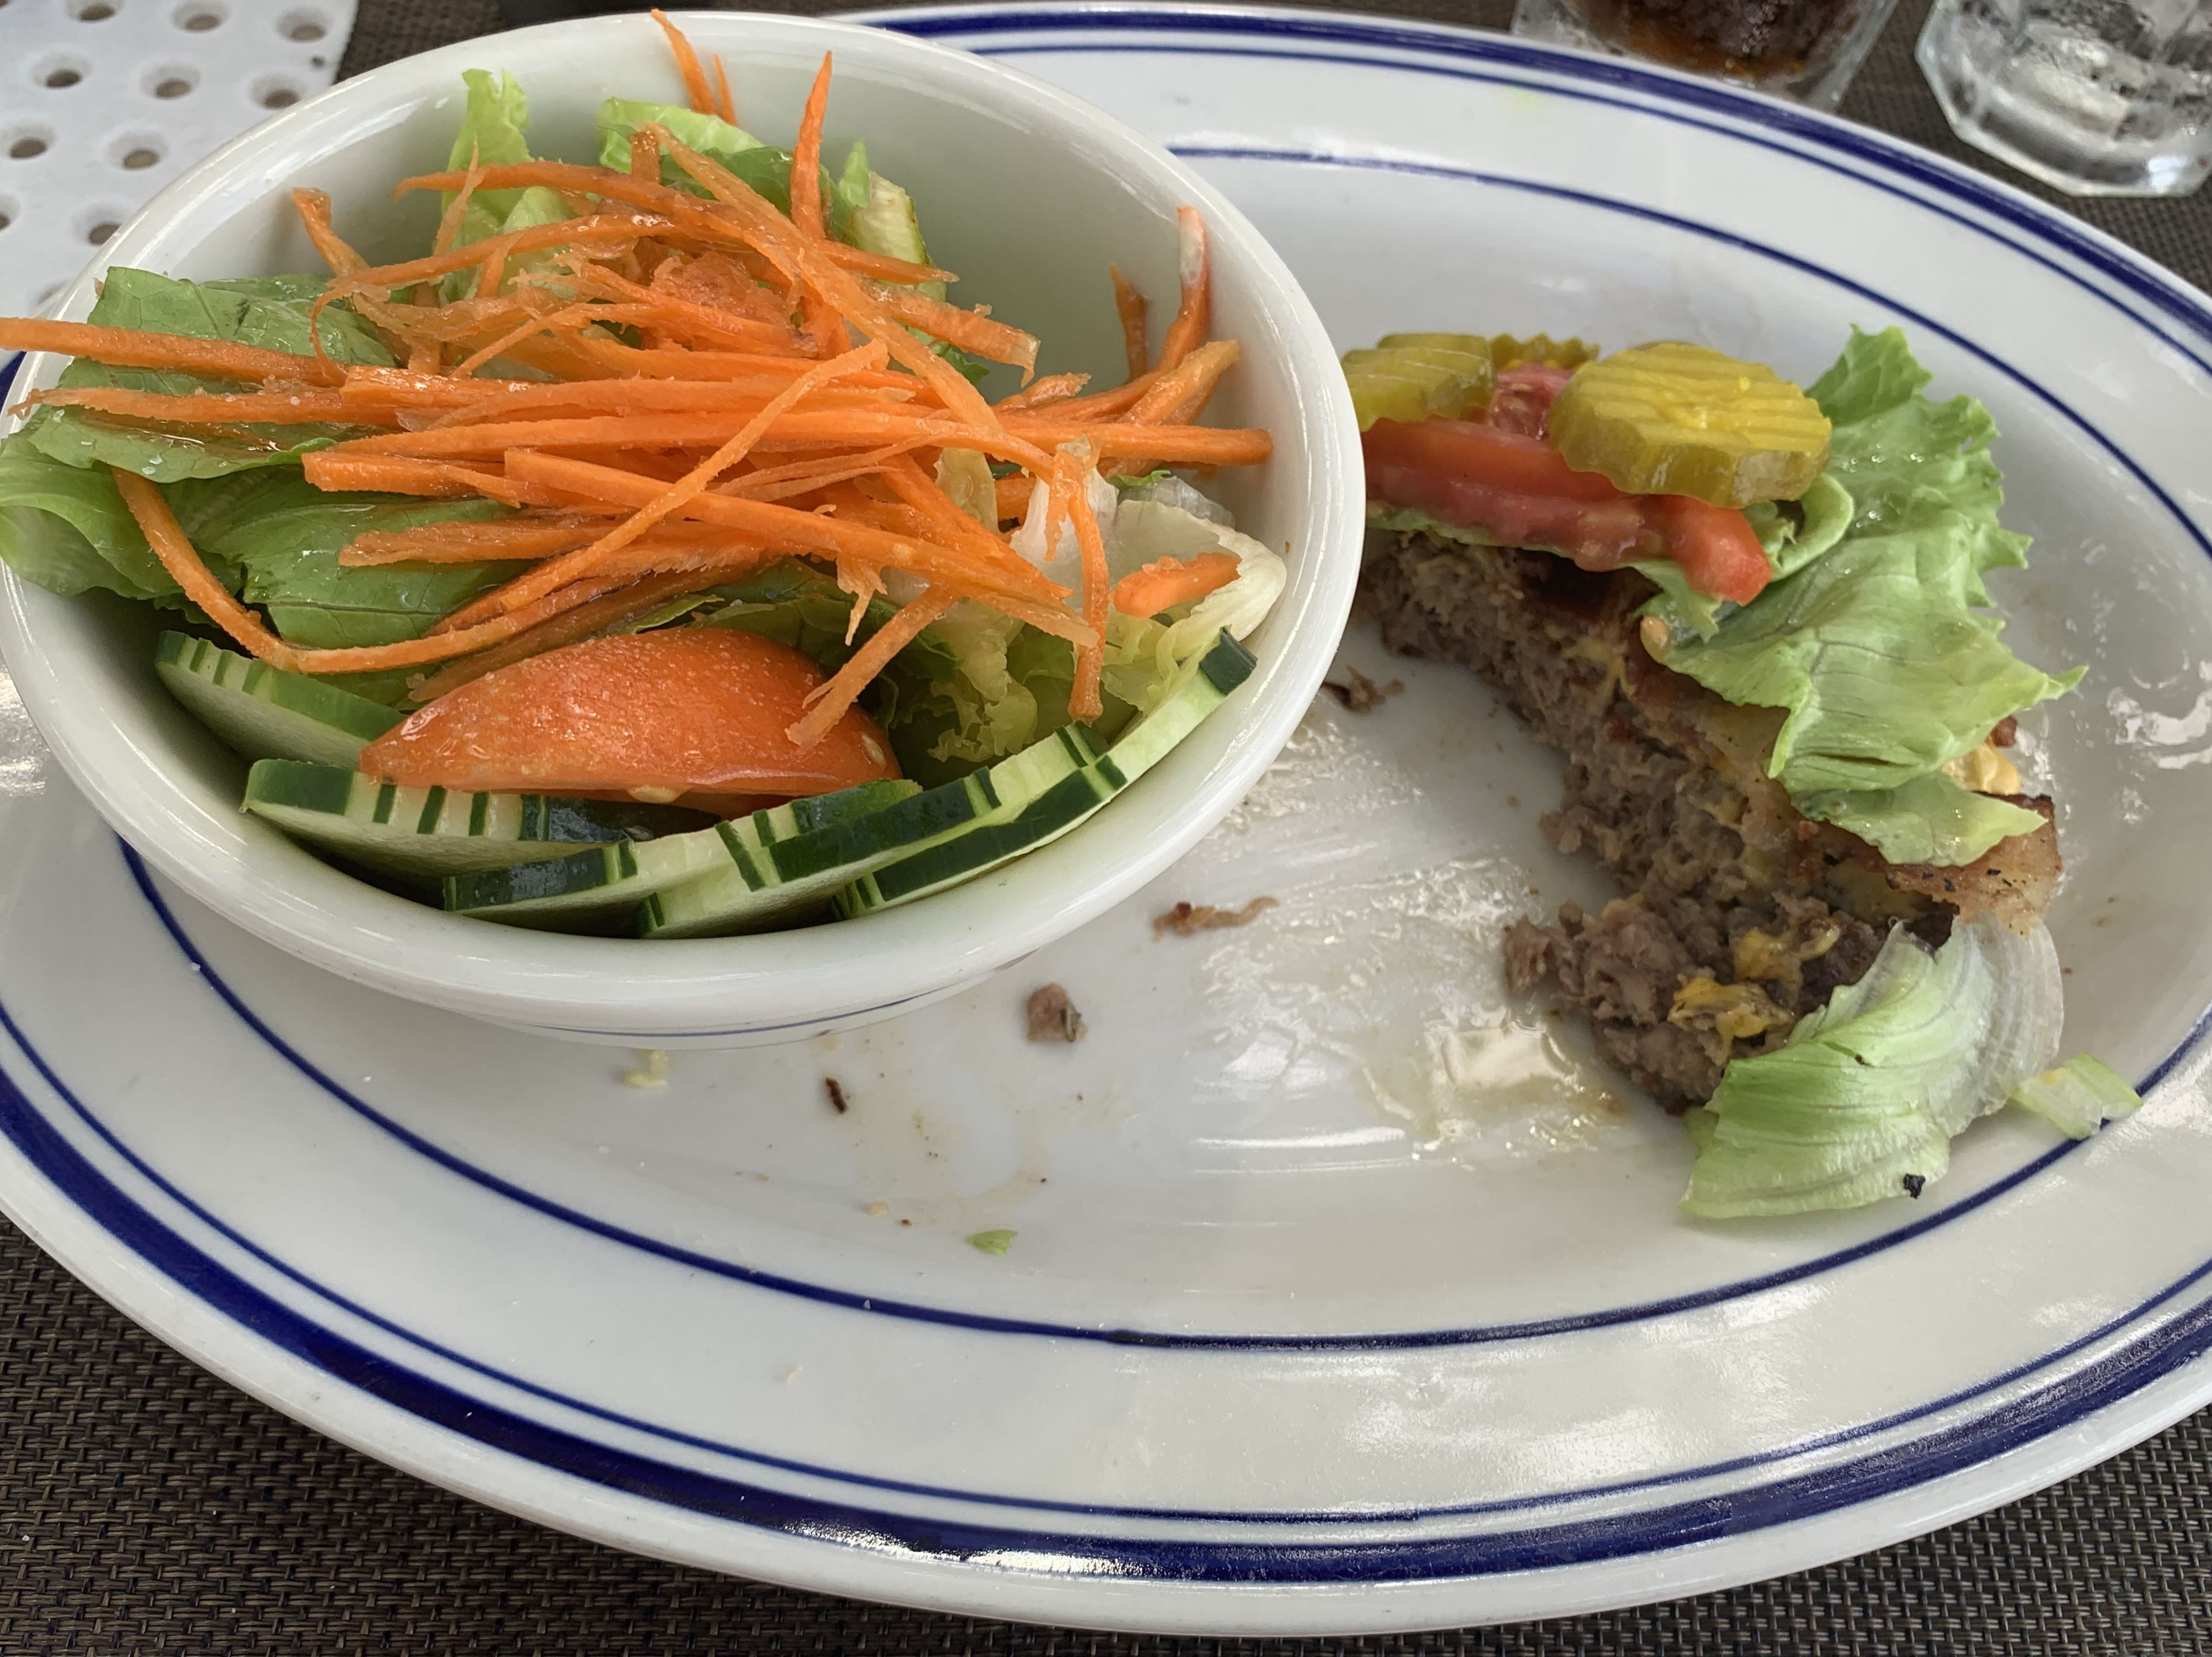 Hamburger and Salad with Olive Oil Keto in Jamaica